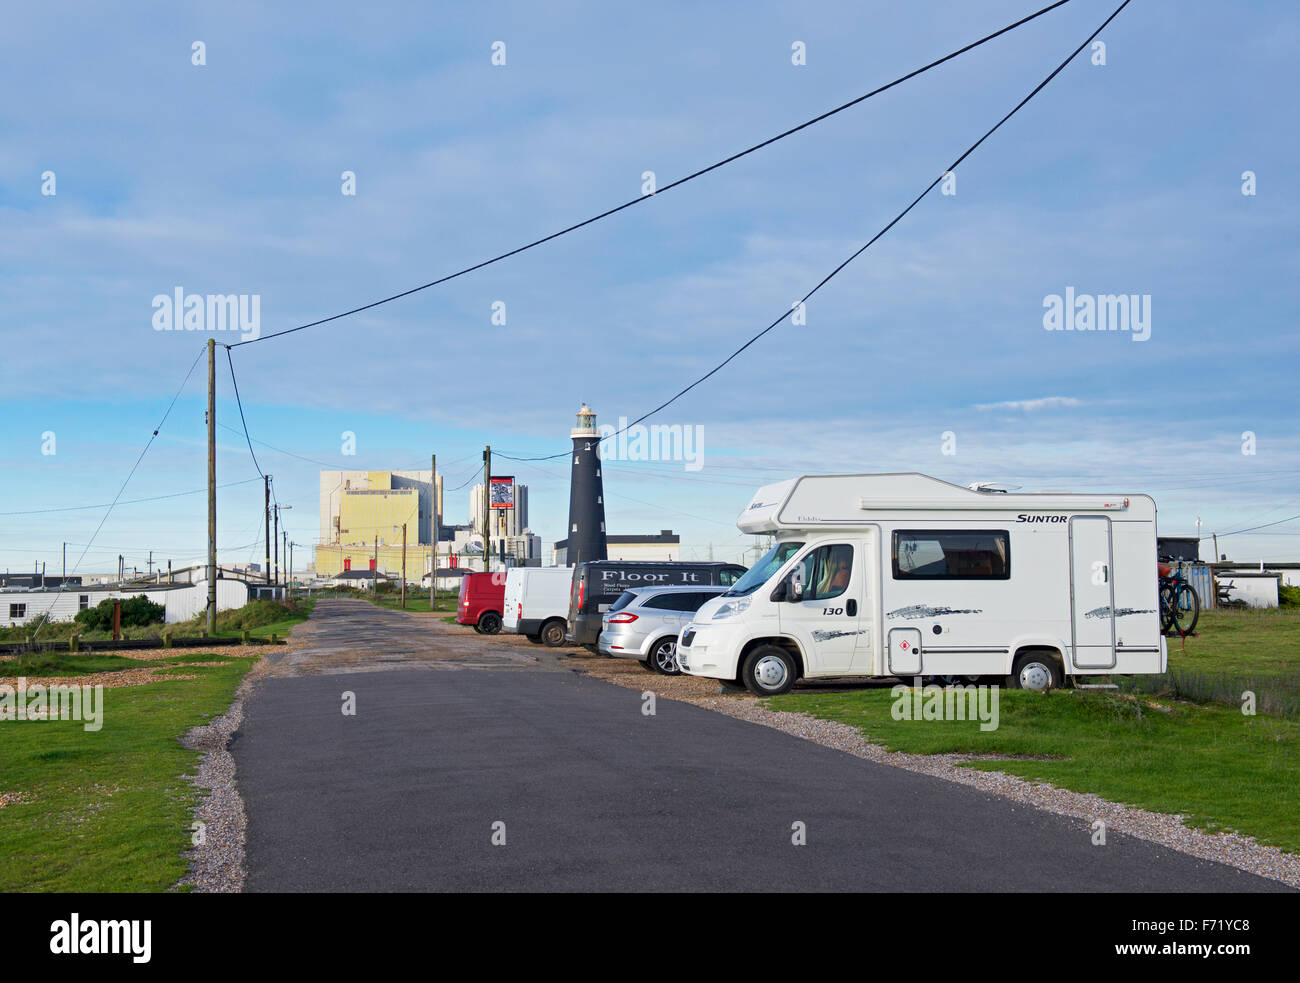 Motorhome parked at Dungeness, with nuclear power station in background, Kent, England UK - Stock Image